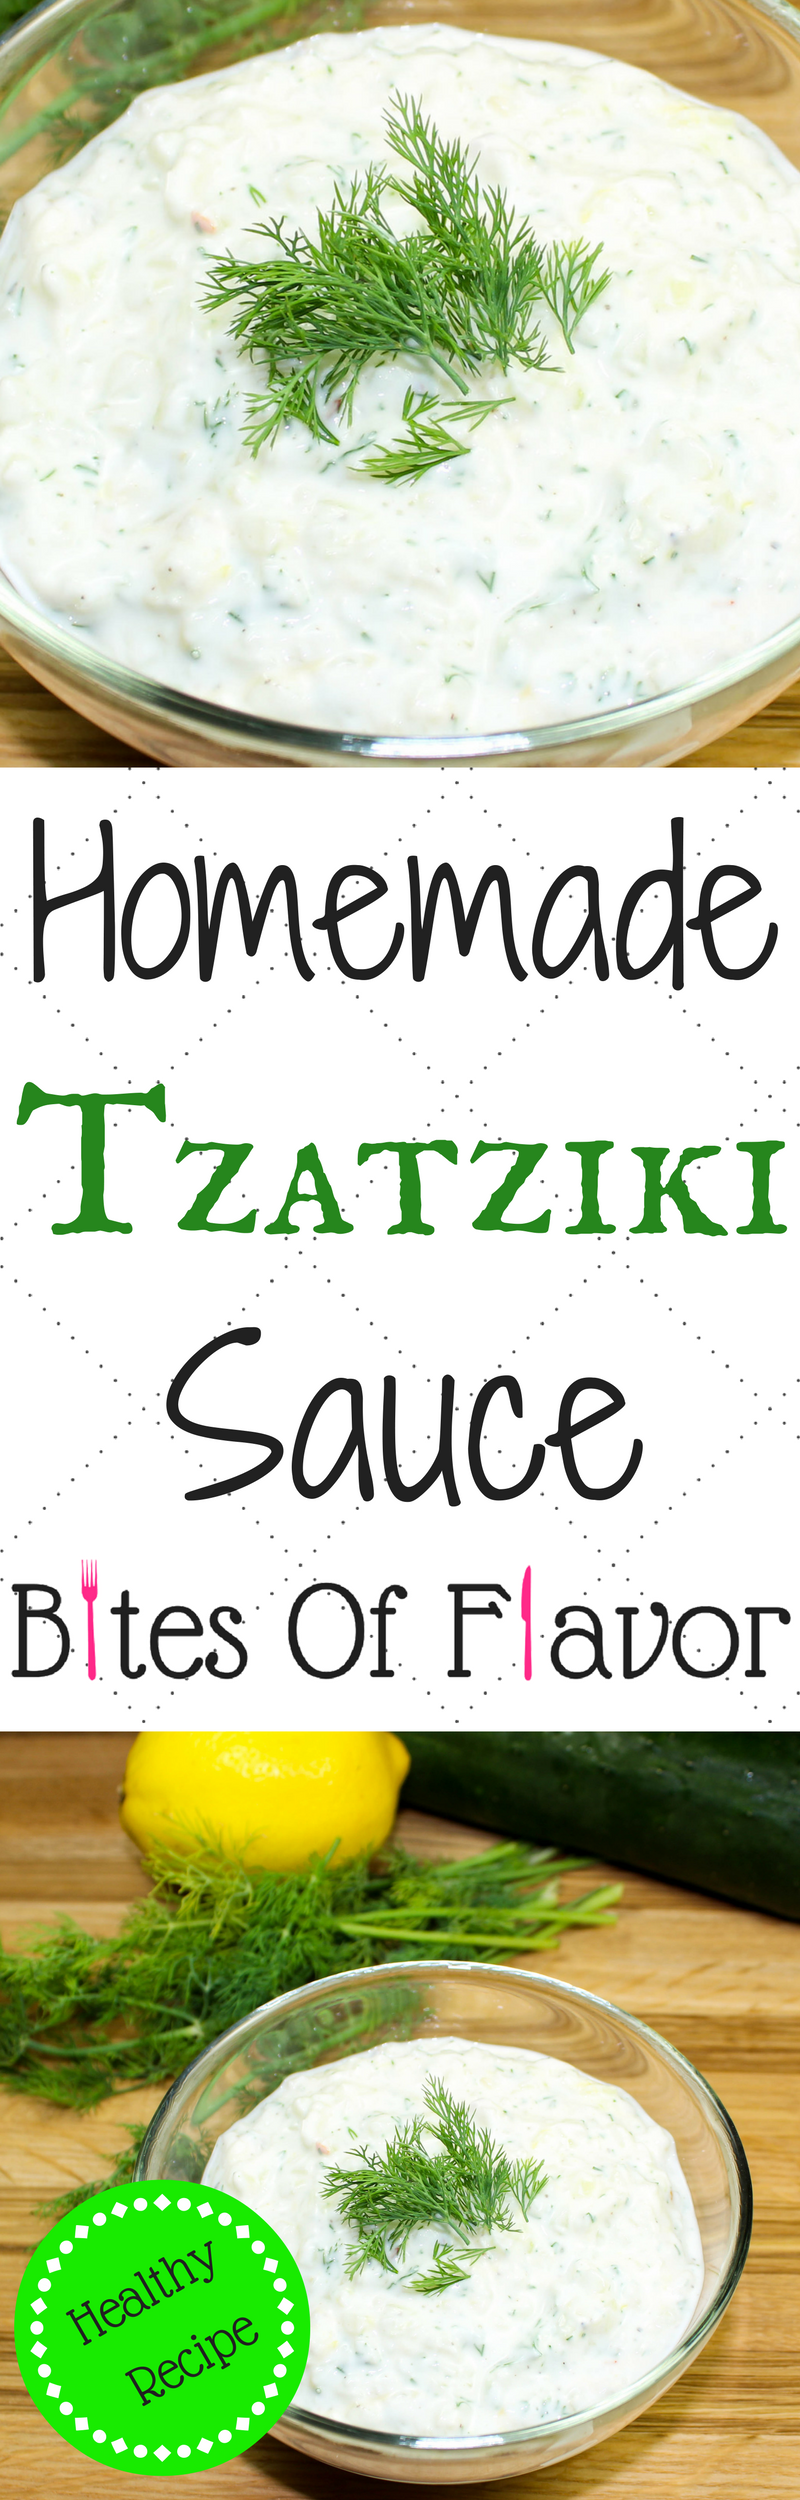 Homemade Tzatziki Sauce-Perfect addition to any Greek inspired meal! Low fat and low carb packed with bold flavors. Great as a dip or with meat! Weight Watchers friendly recipe! www.bitesofflavor.com